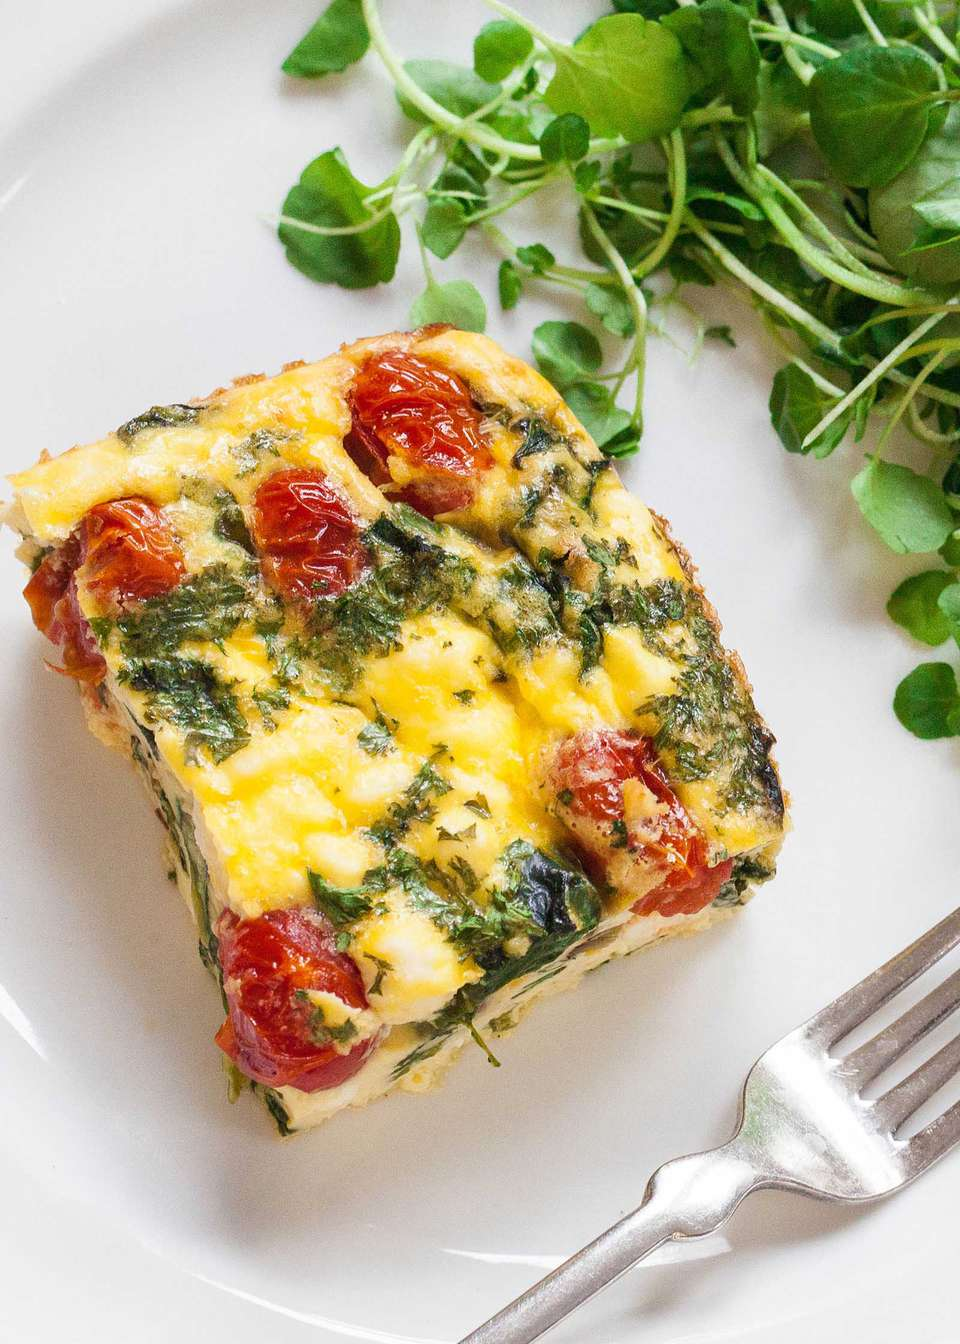 Frittata with Spinach, Tomatoes, and Feta